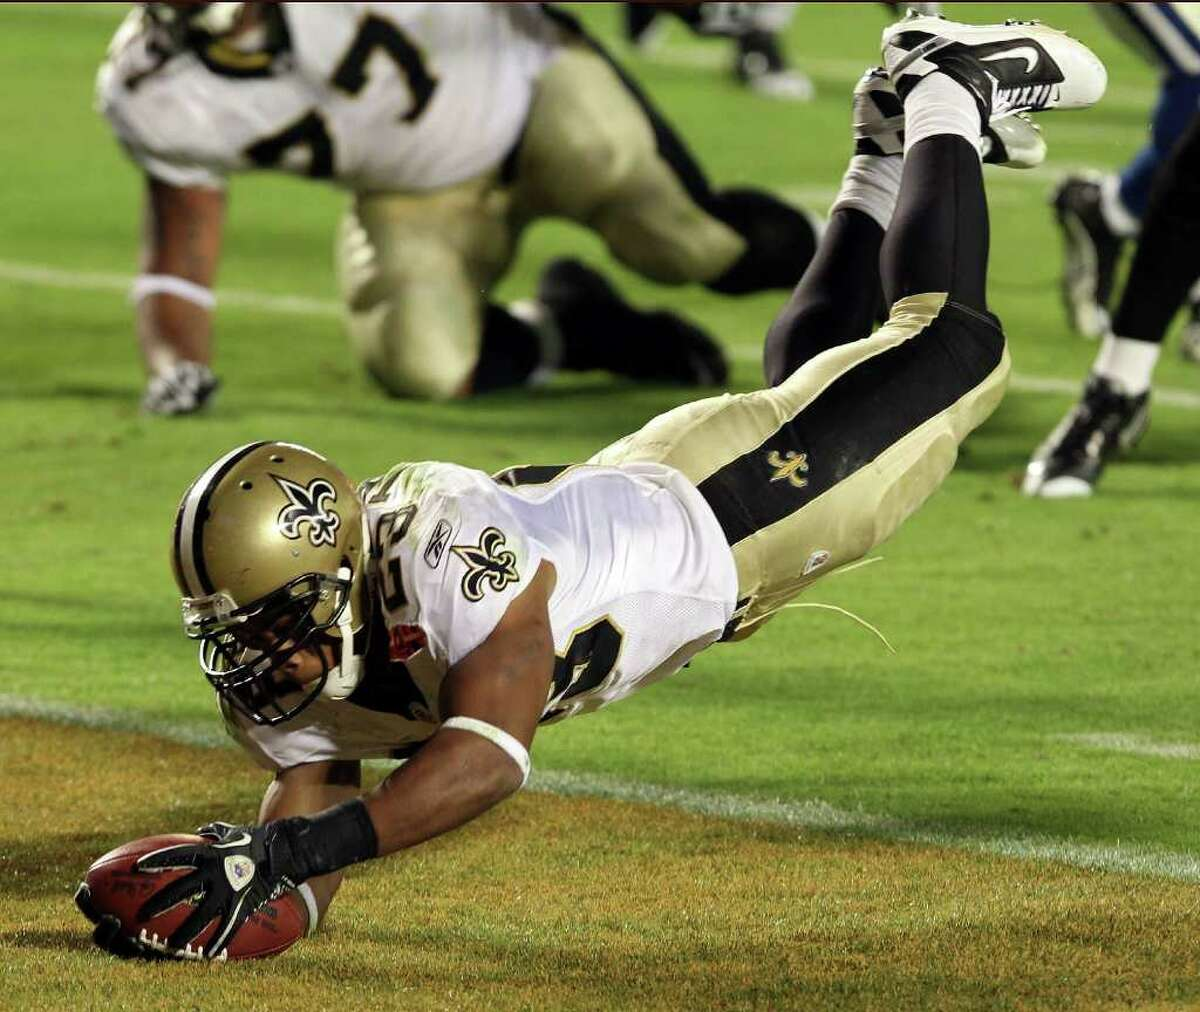 MIAMI GARDENS, FL - FEBRUARY 07: Pierre Thomas #23 of the New Orleans Saints leaps into the end zone to score a touchdown against of the Indianapolis Colts in the third quarter during Super Bowl XLIV on February 7, 2010 at Sun Life Stadium in Miami Gardens, Florida. (Photo by Elsa/Getty Images) *** Local Caption *** Pierre Thomas